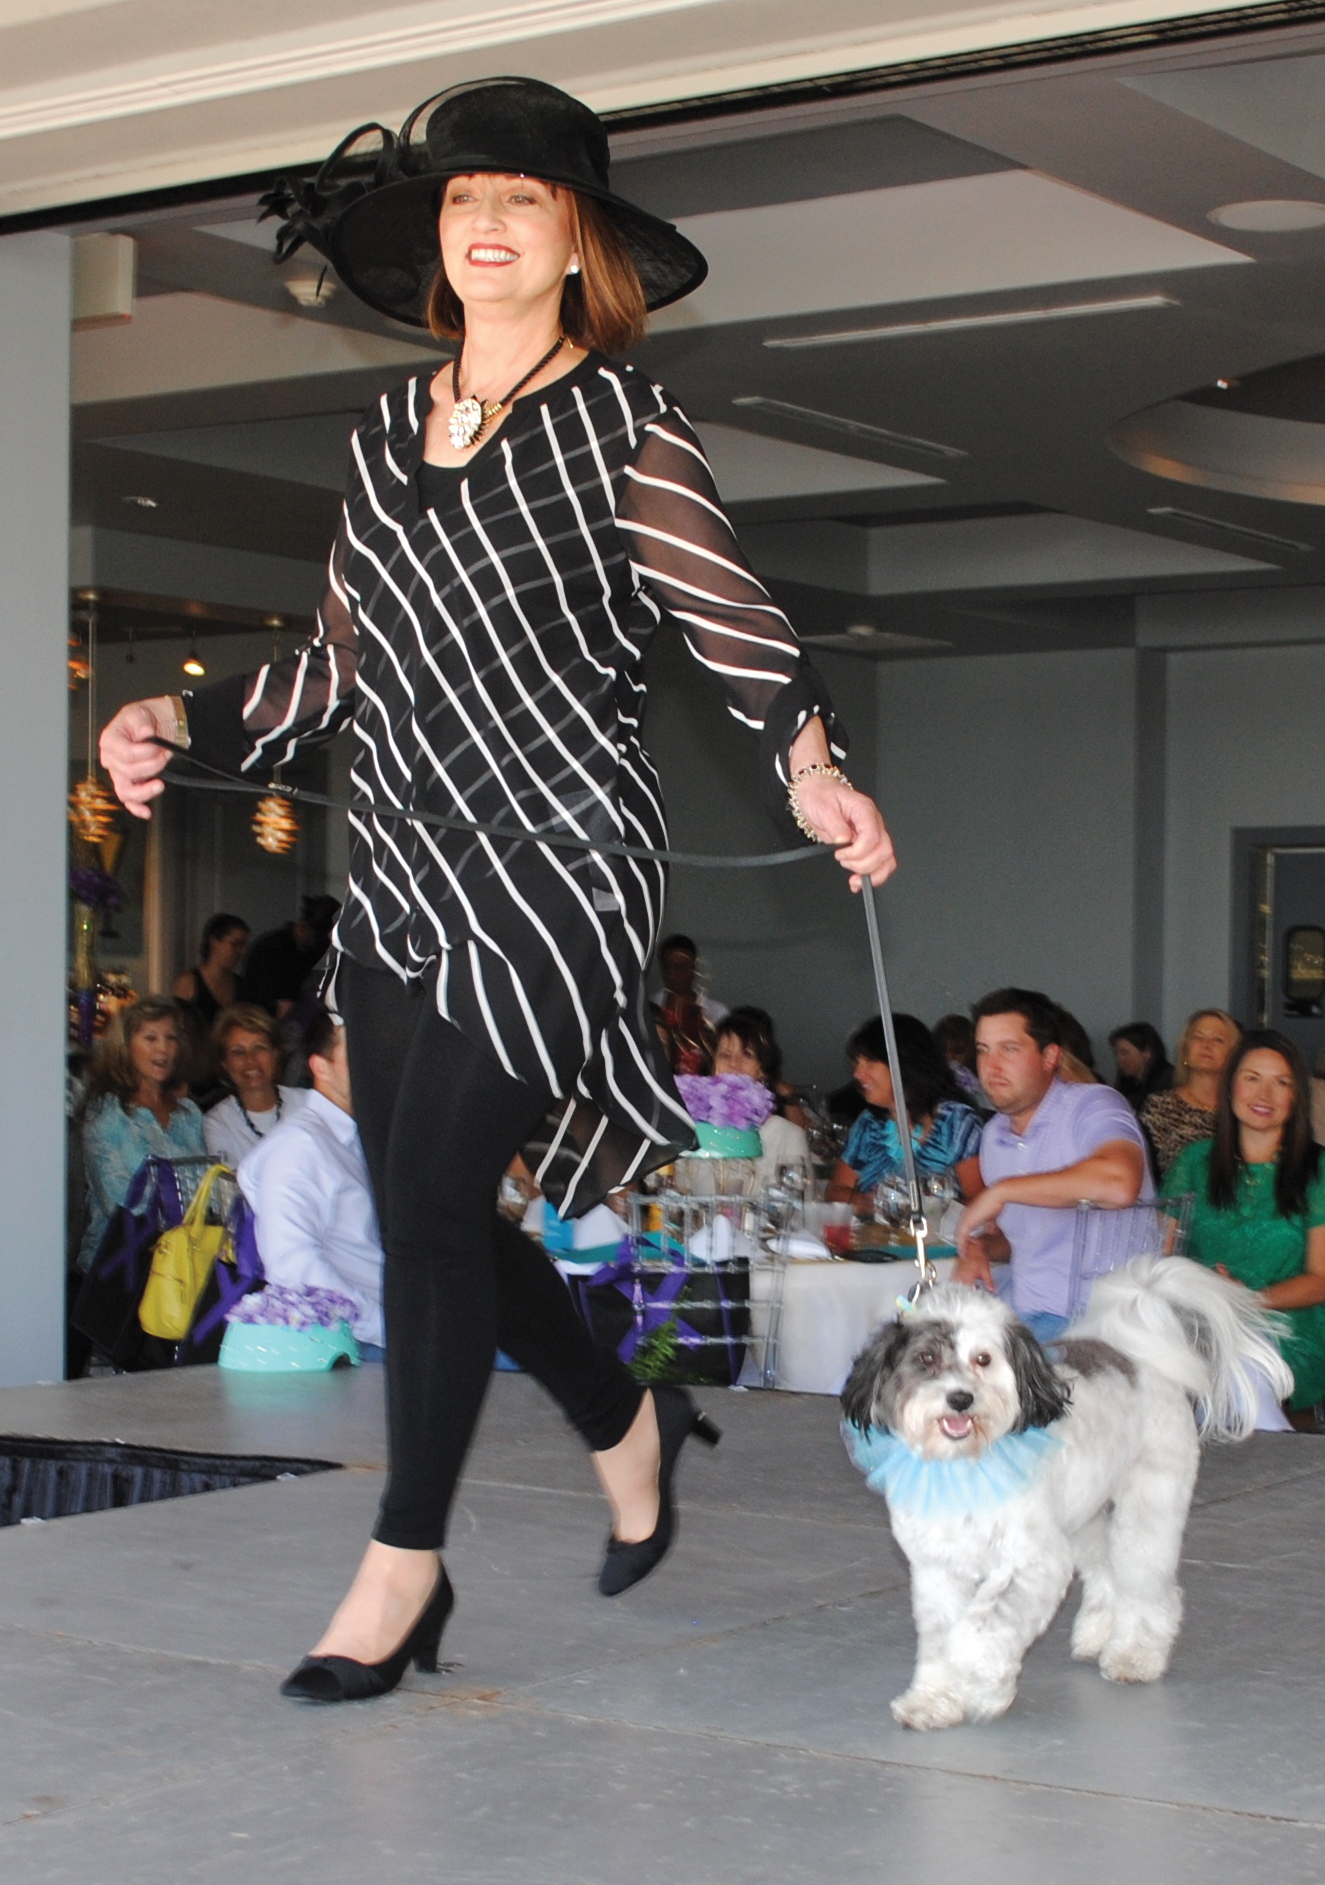 Dogs & Diva model and her companion come down the runway. Photo by Mary Alys Cherry.